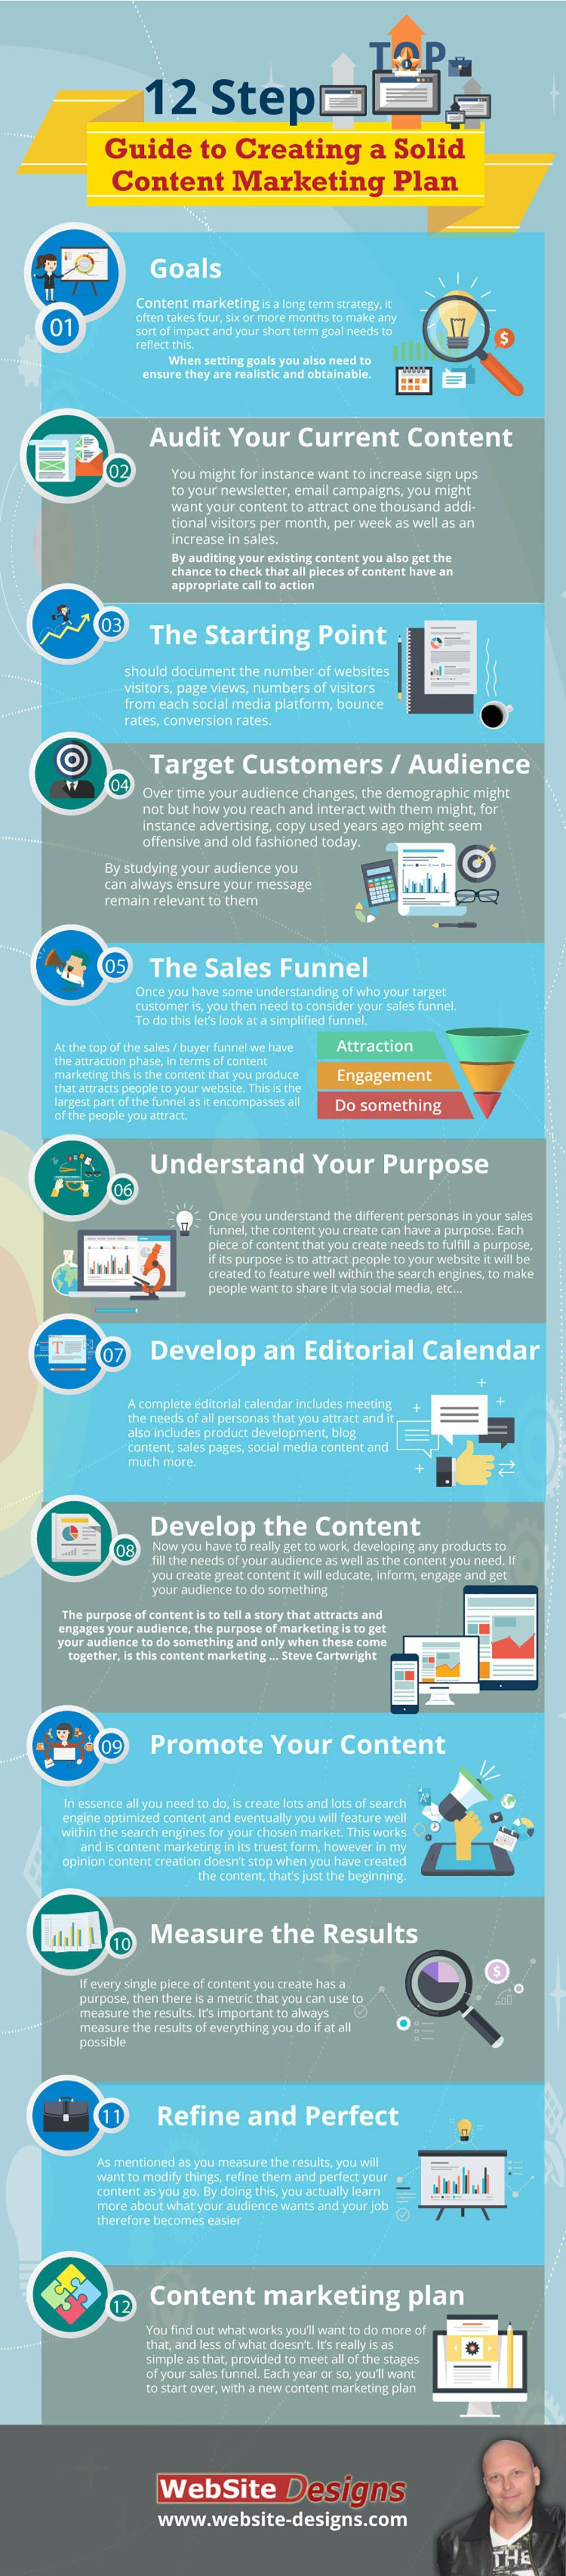 How To Create A Solid Content Marketing Plan Infographic